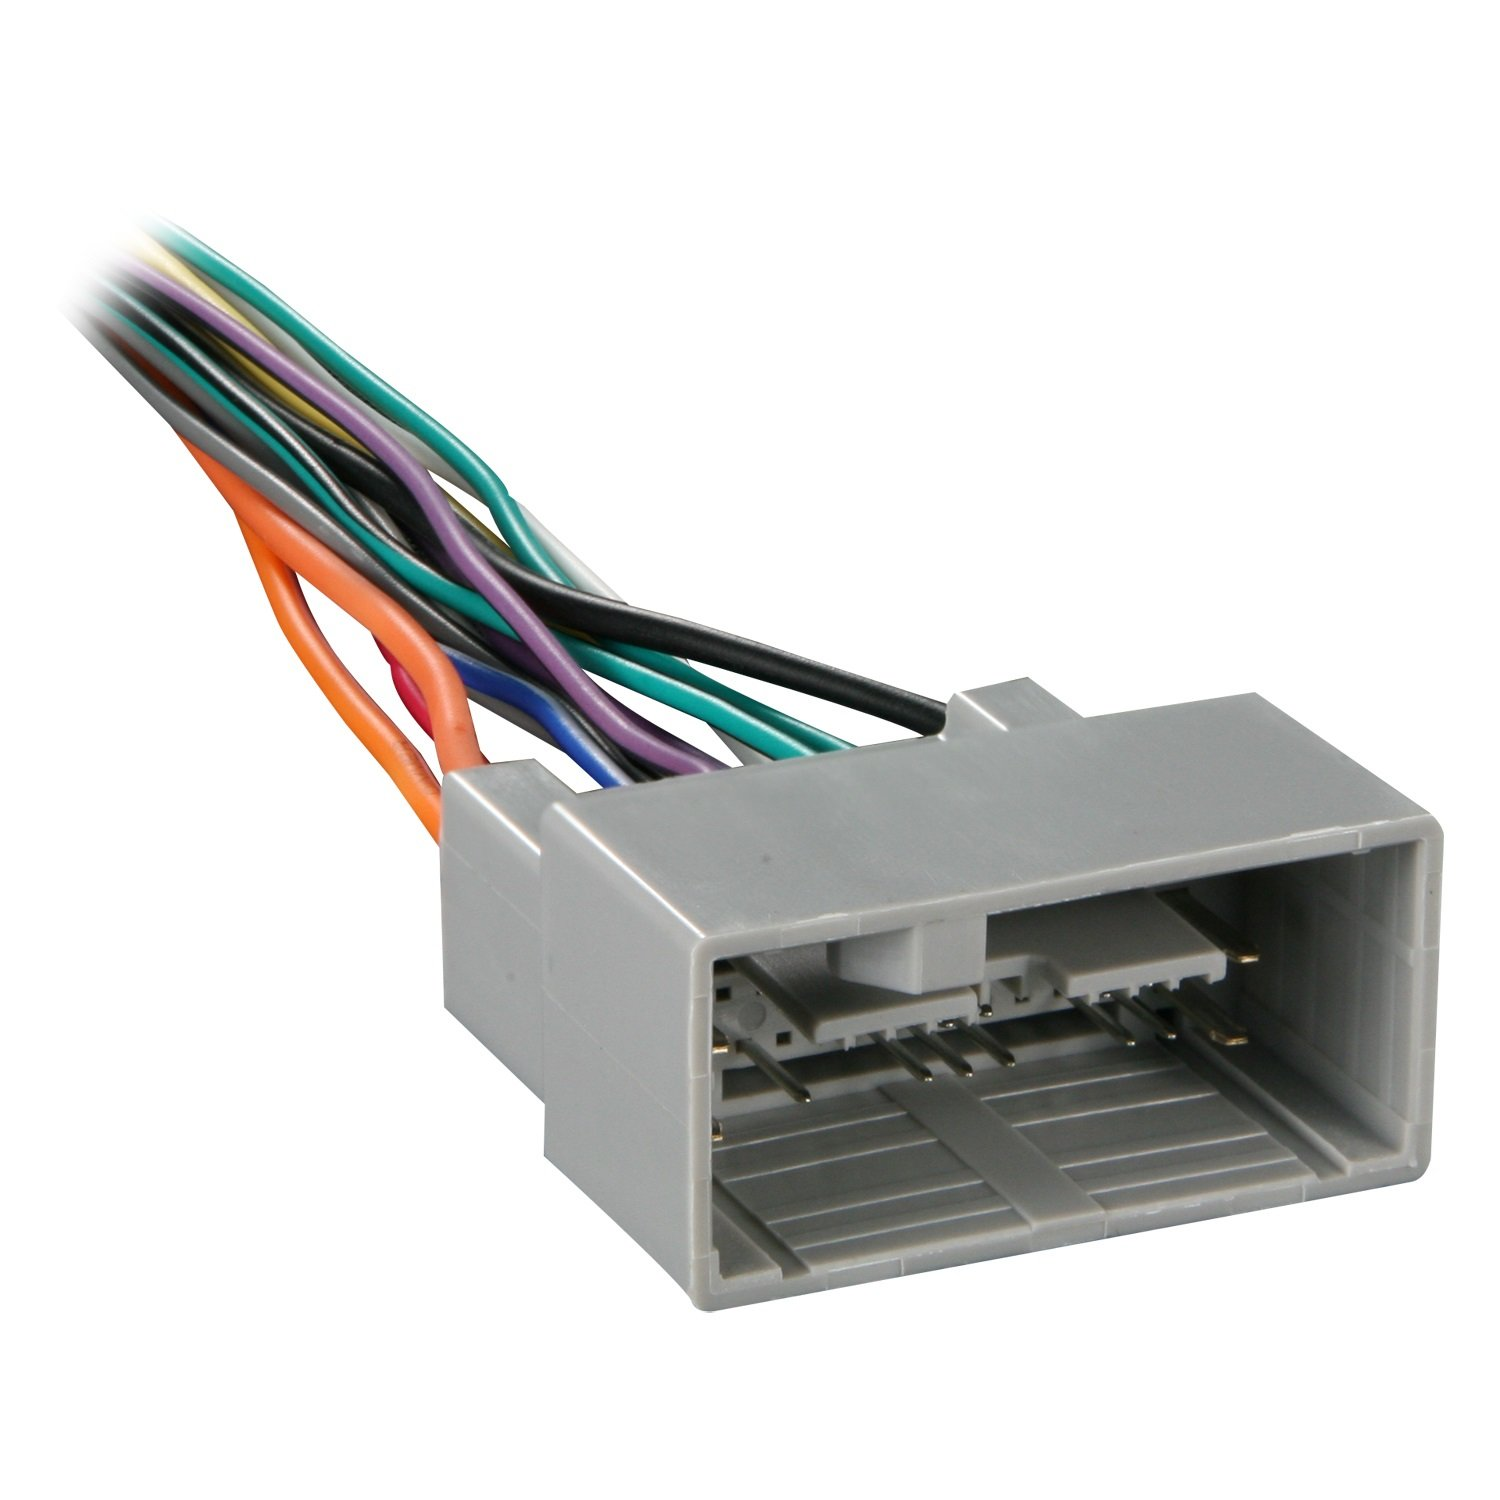 613Kg8IWI7L._SL1500_ amazon com metra 70 1729 radio wiring harness for honda 2008 up metra wiring diagram at gsmportal.co